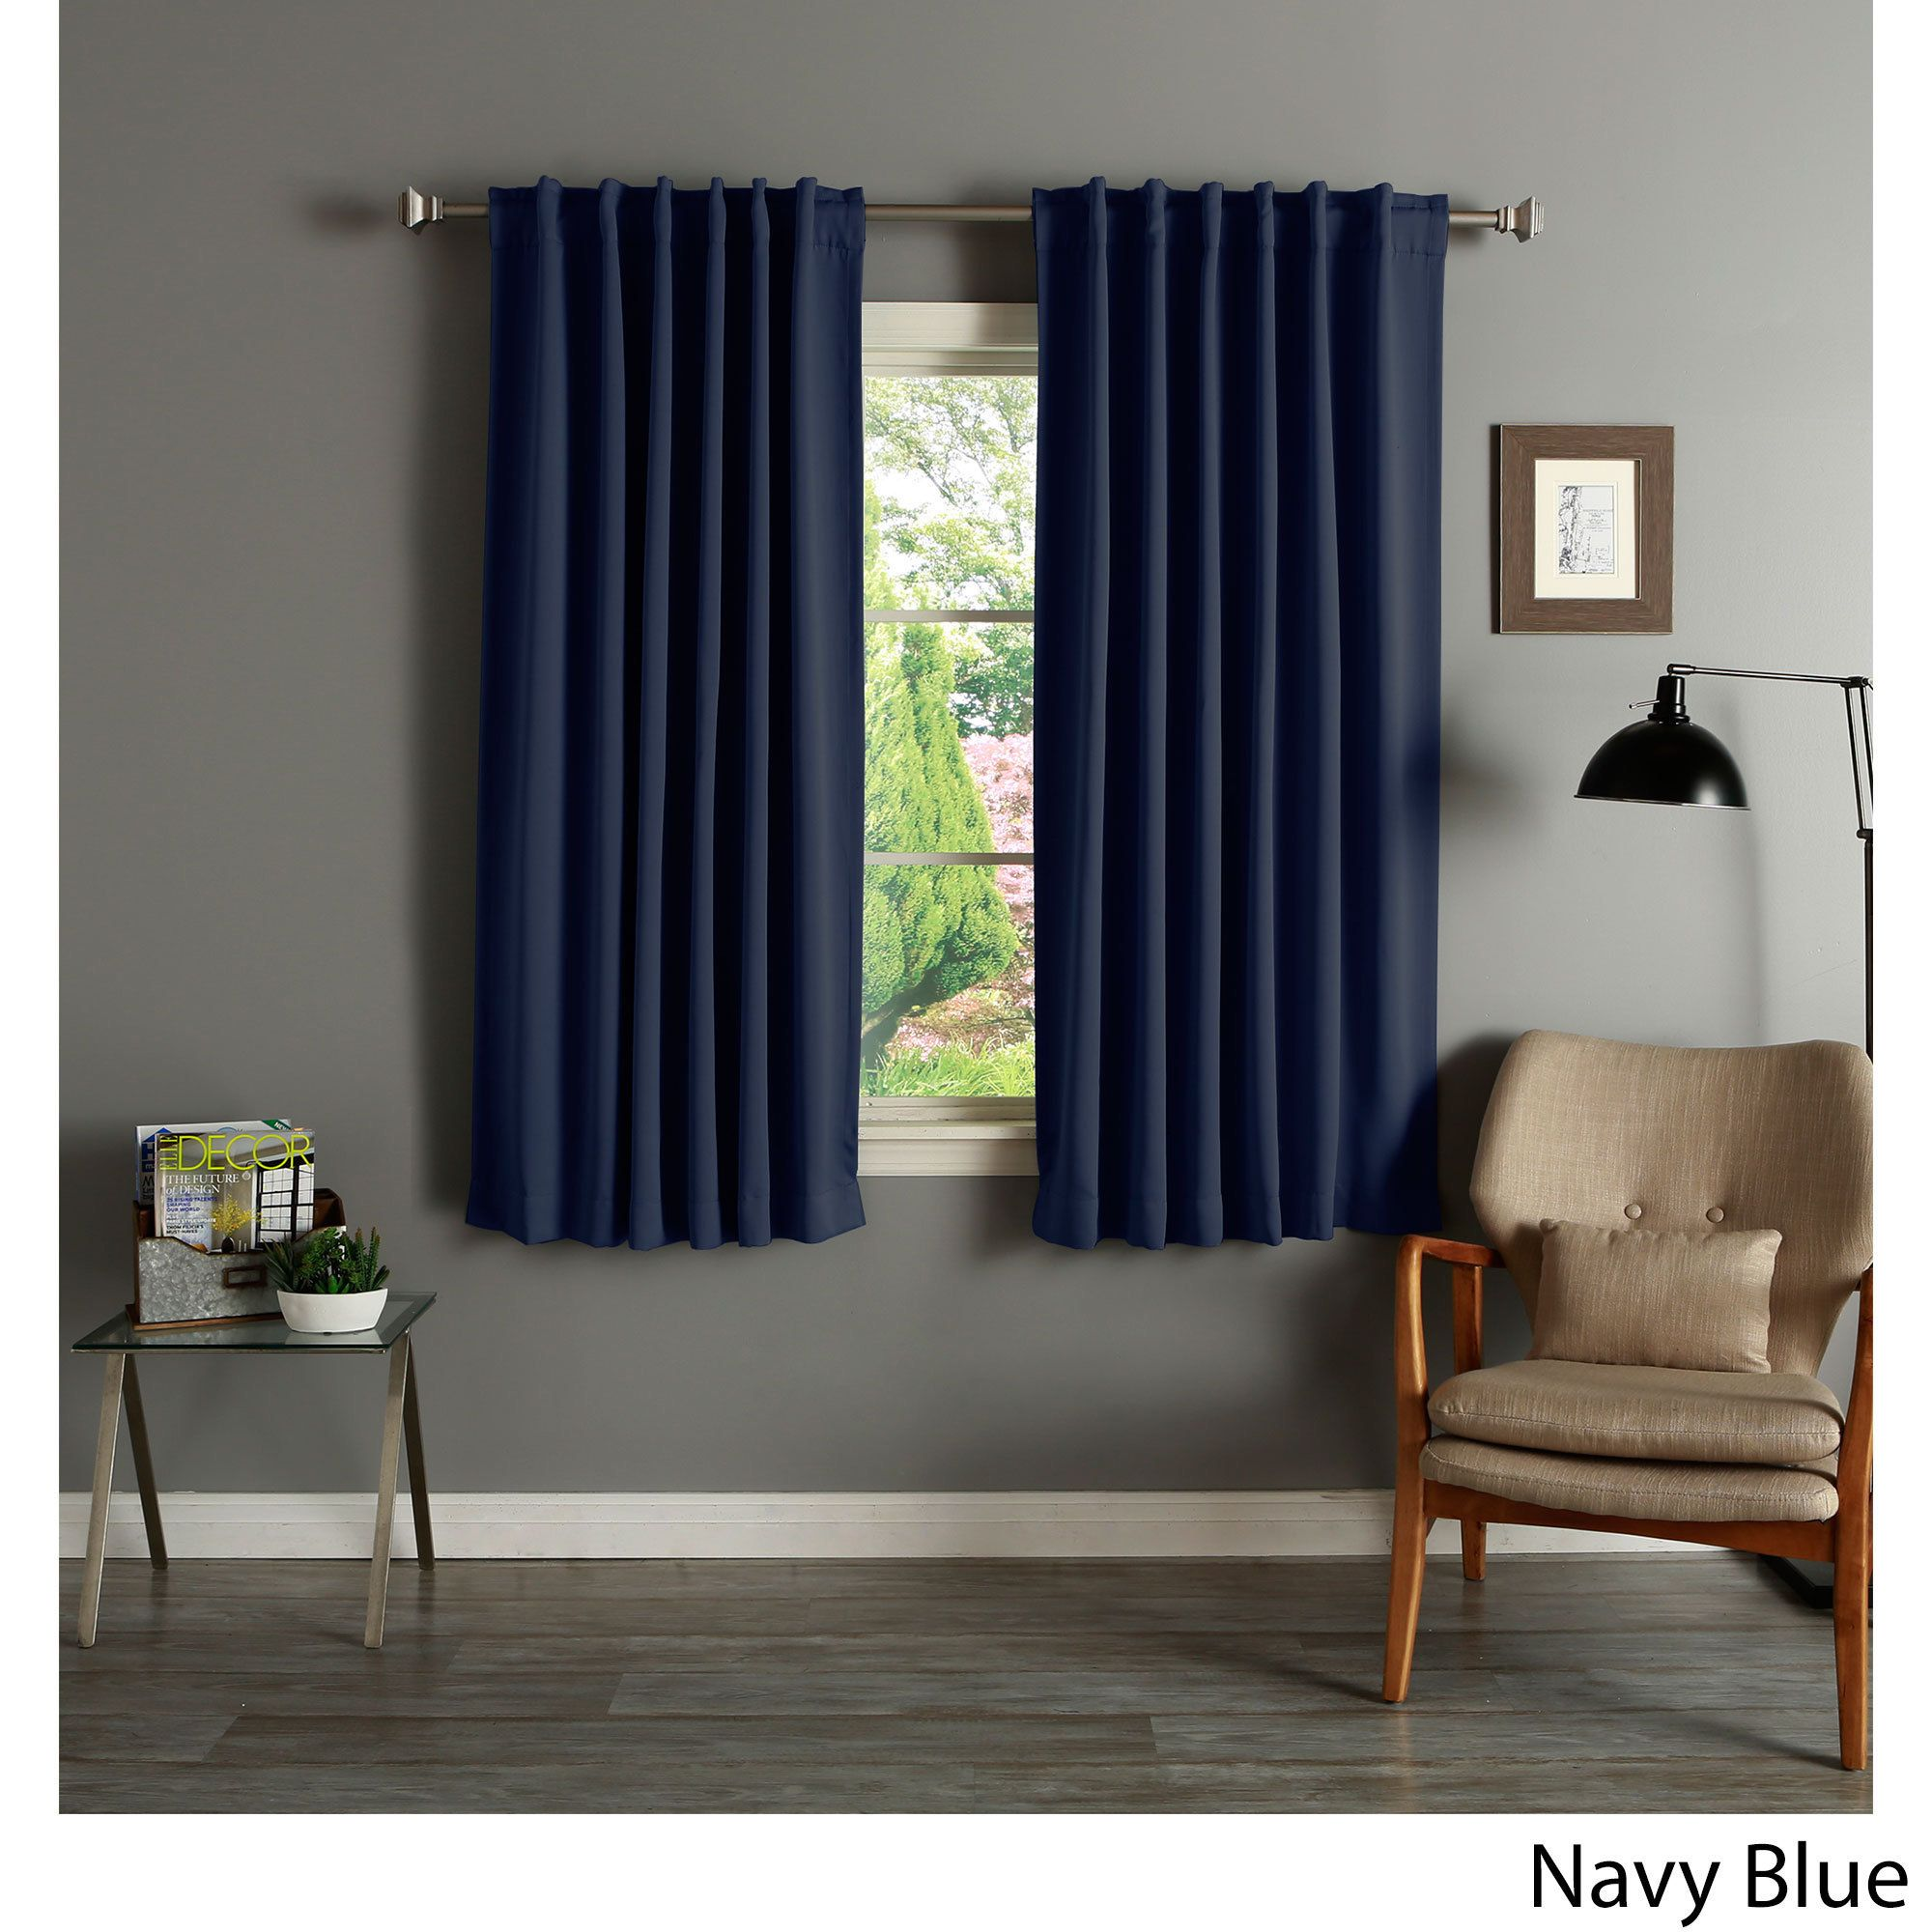 Small Crop Of Navy Blue Curtains